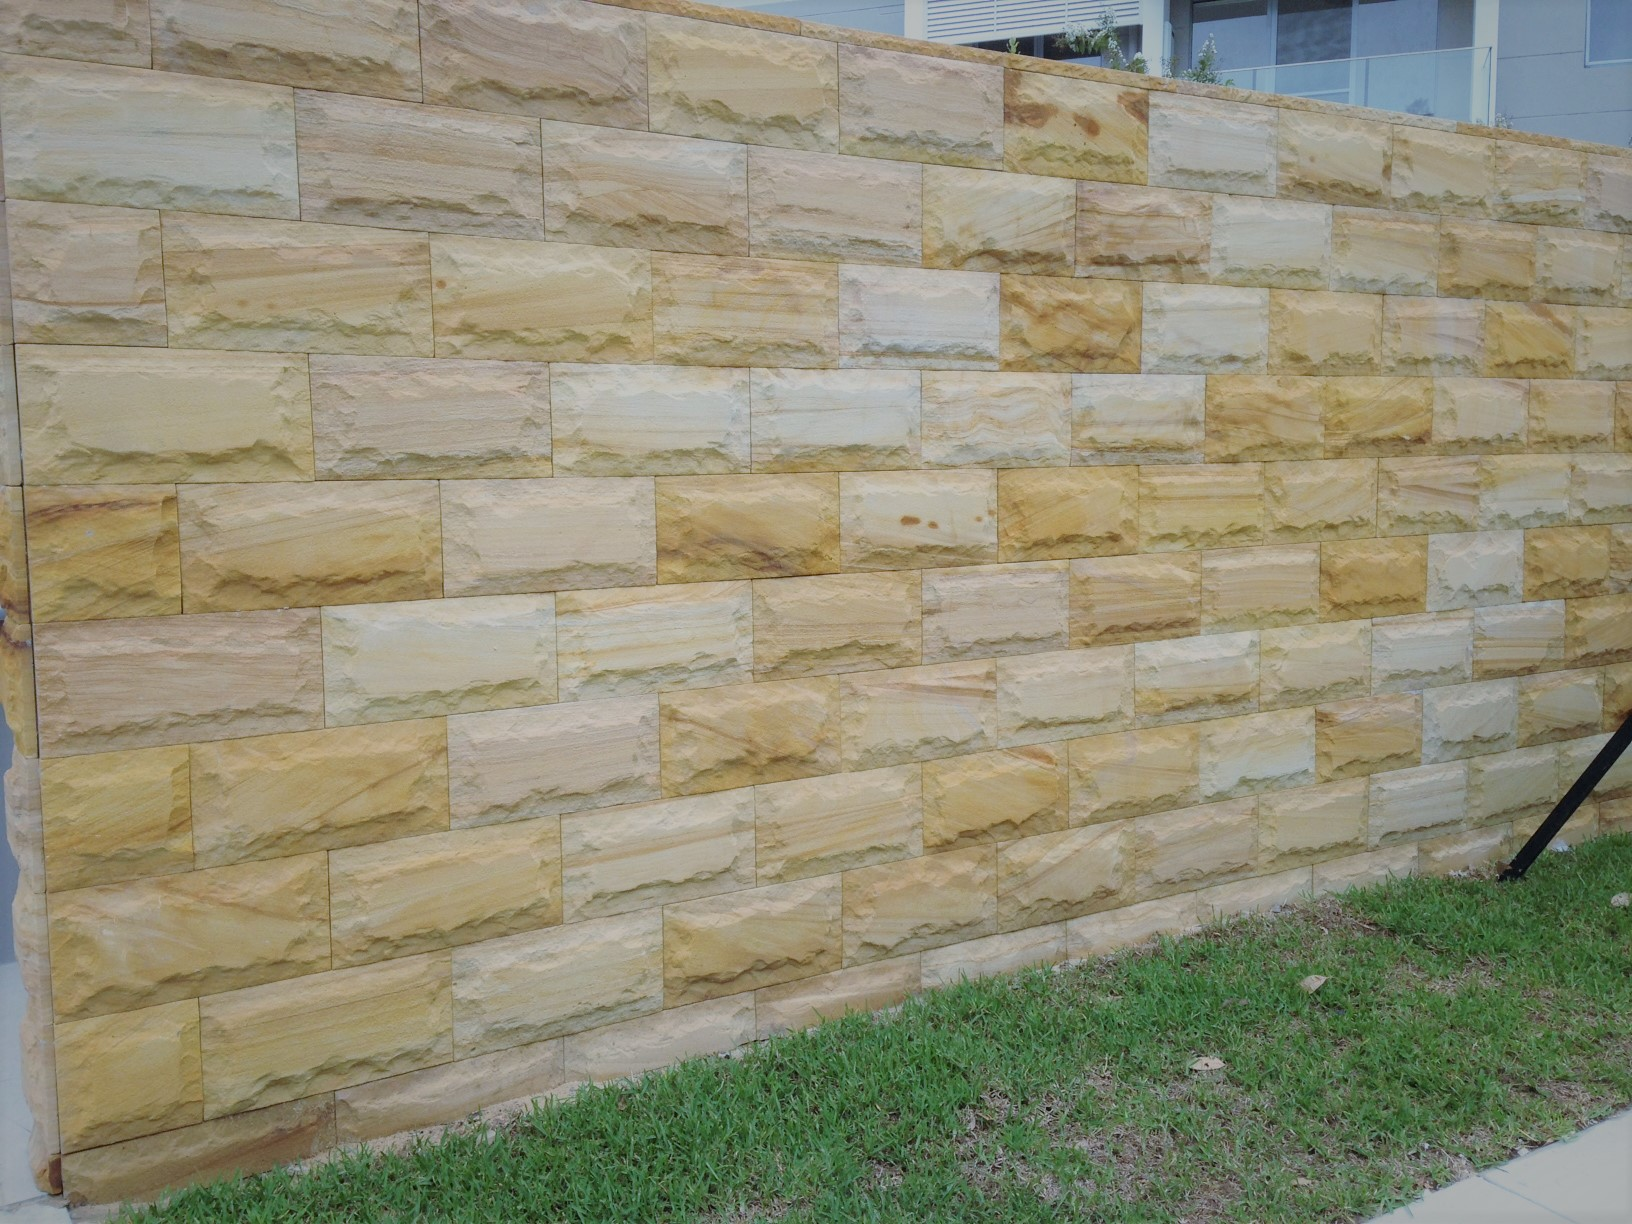 Exterior stone wall project designed with Aussietecture rock face sandstone